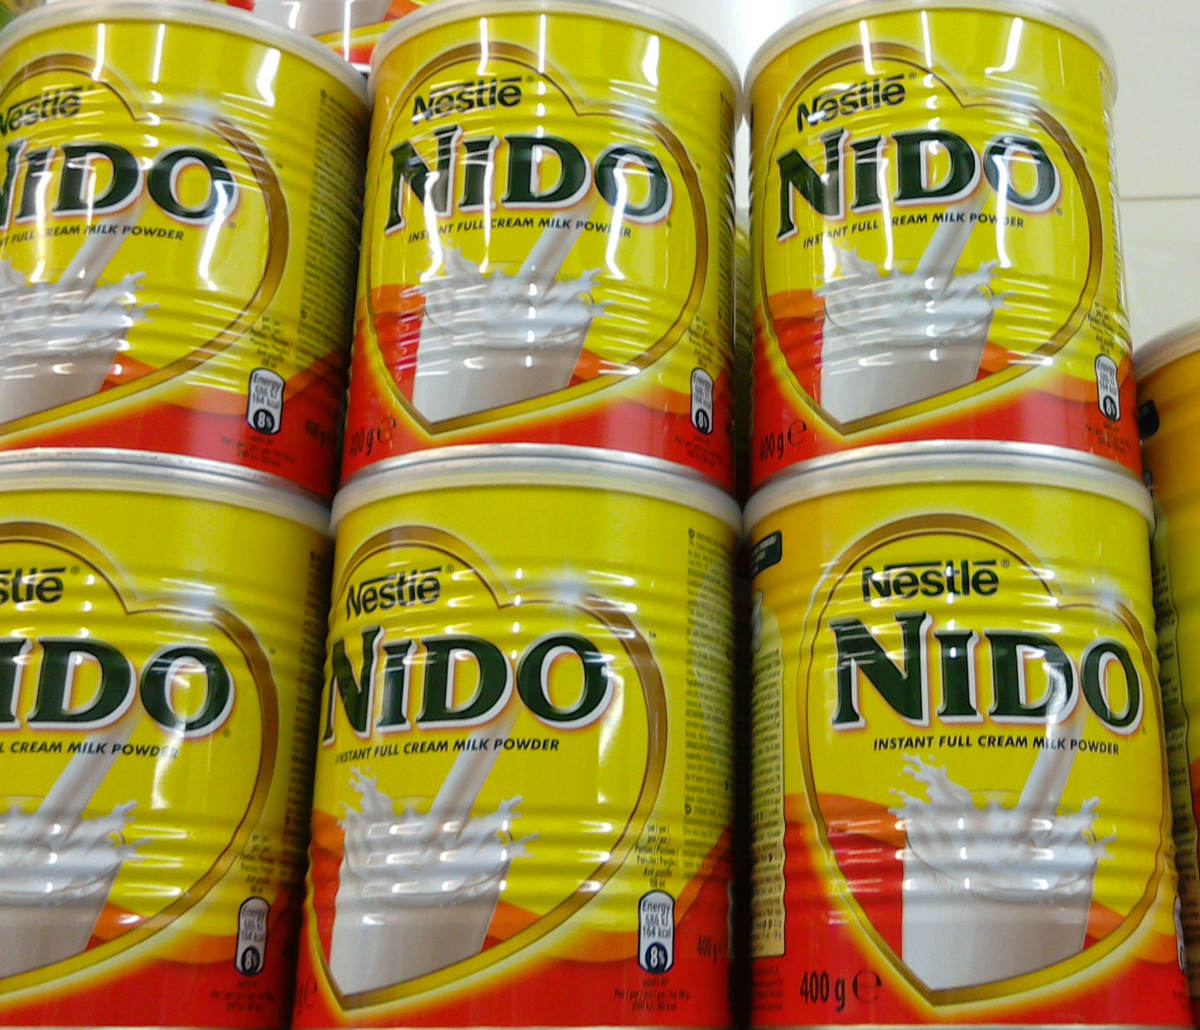 Nestle Nido Milk Powder (Red & White Cap) from Germany Manufacturer